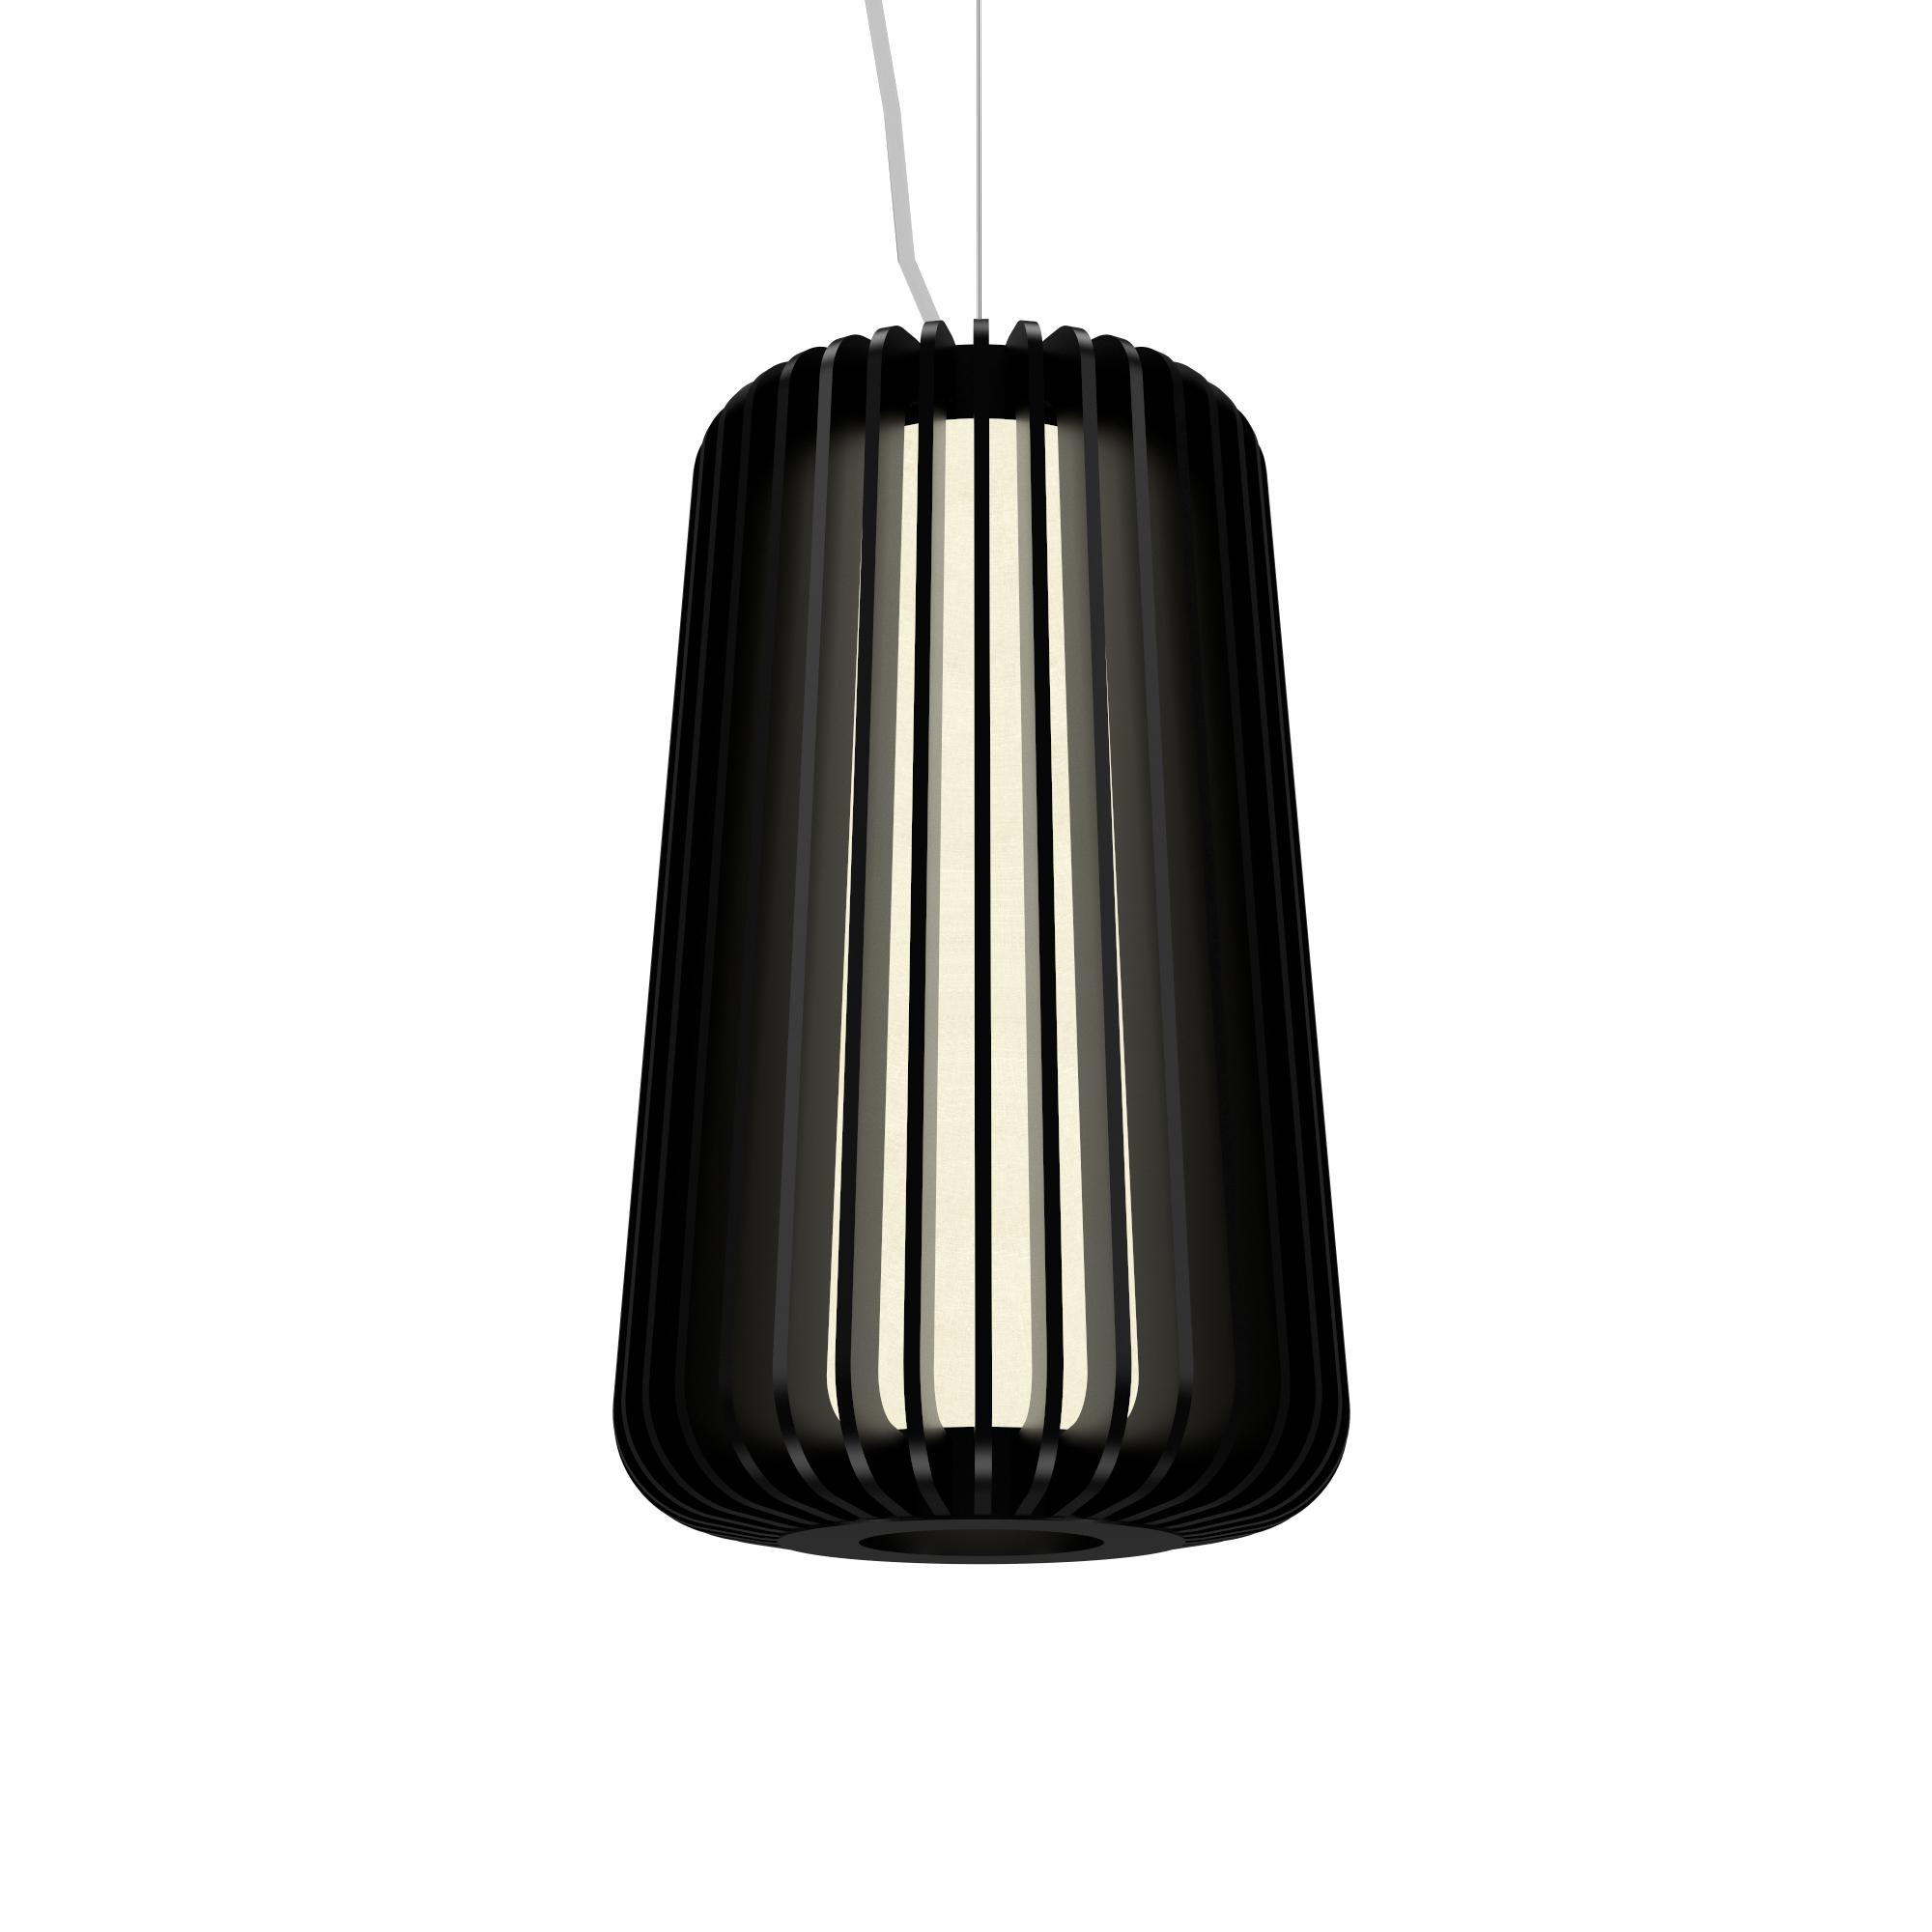 Pendant Lamp Accord Stecche Di Legno 1427 - Stecche Di Legno Line Accord Lighting | 02. Matte Black